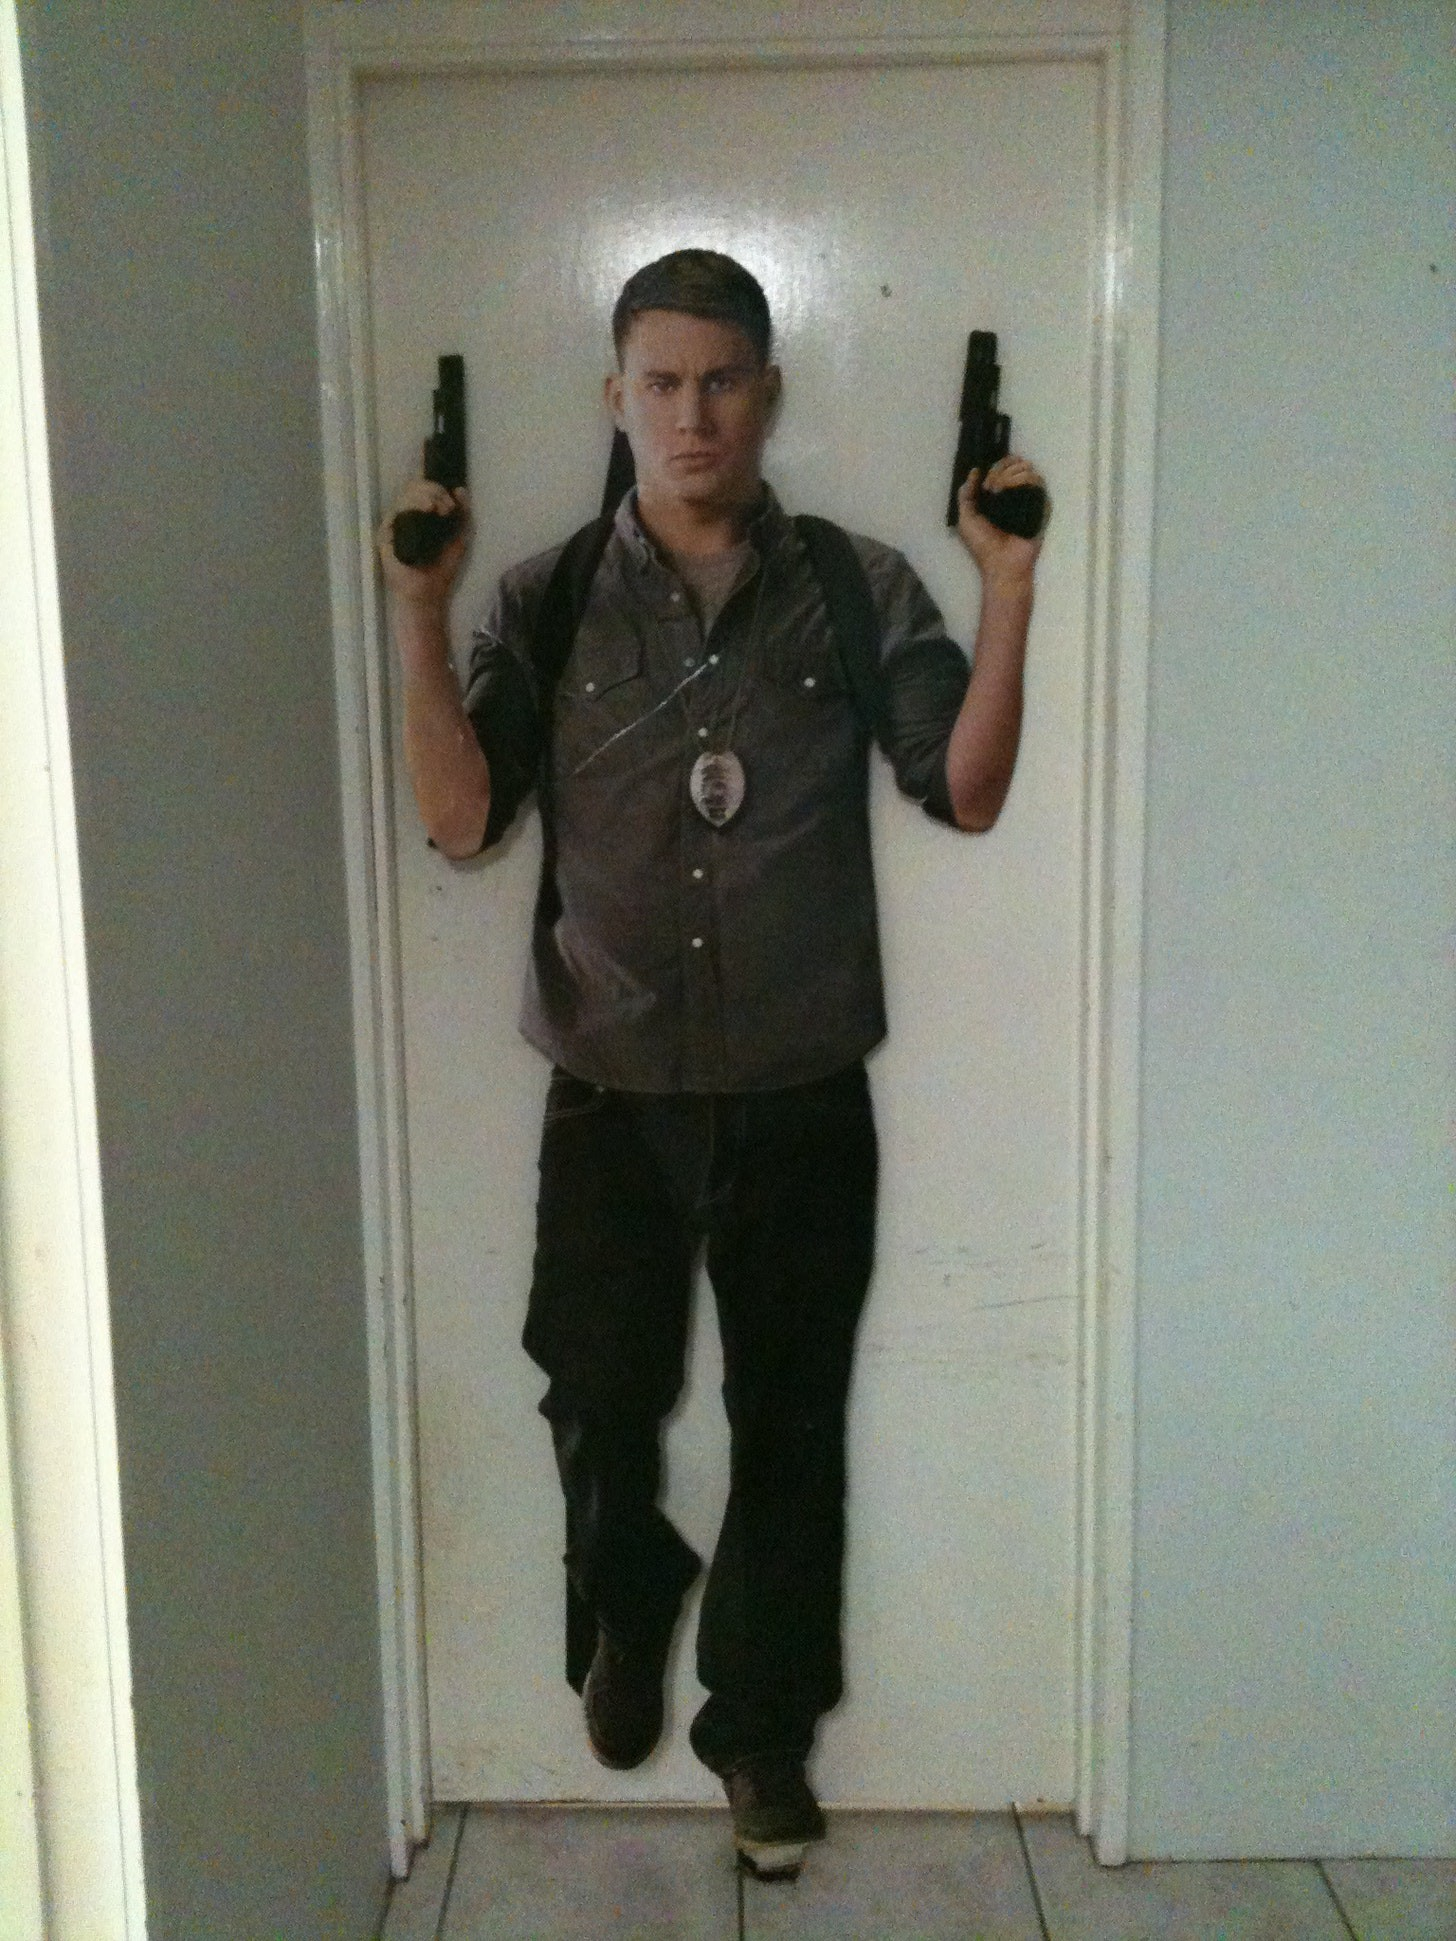 a cardboard cut out of Channing Tatum